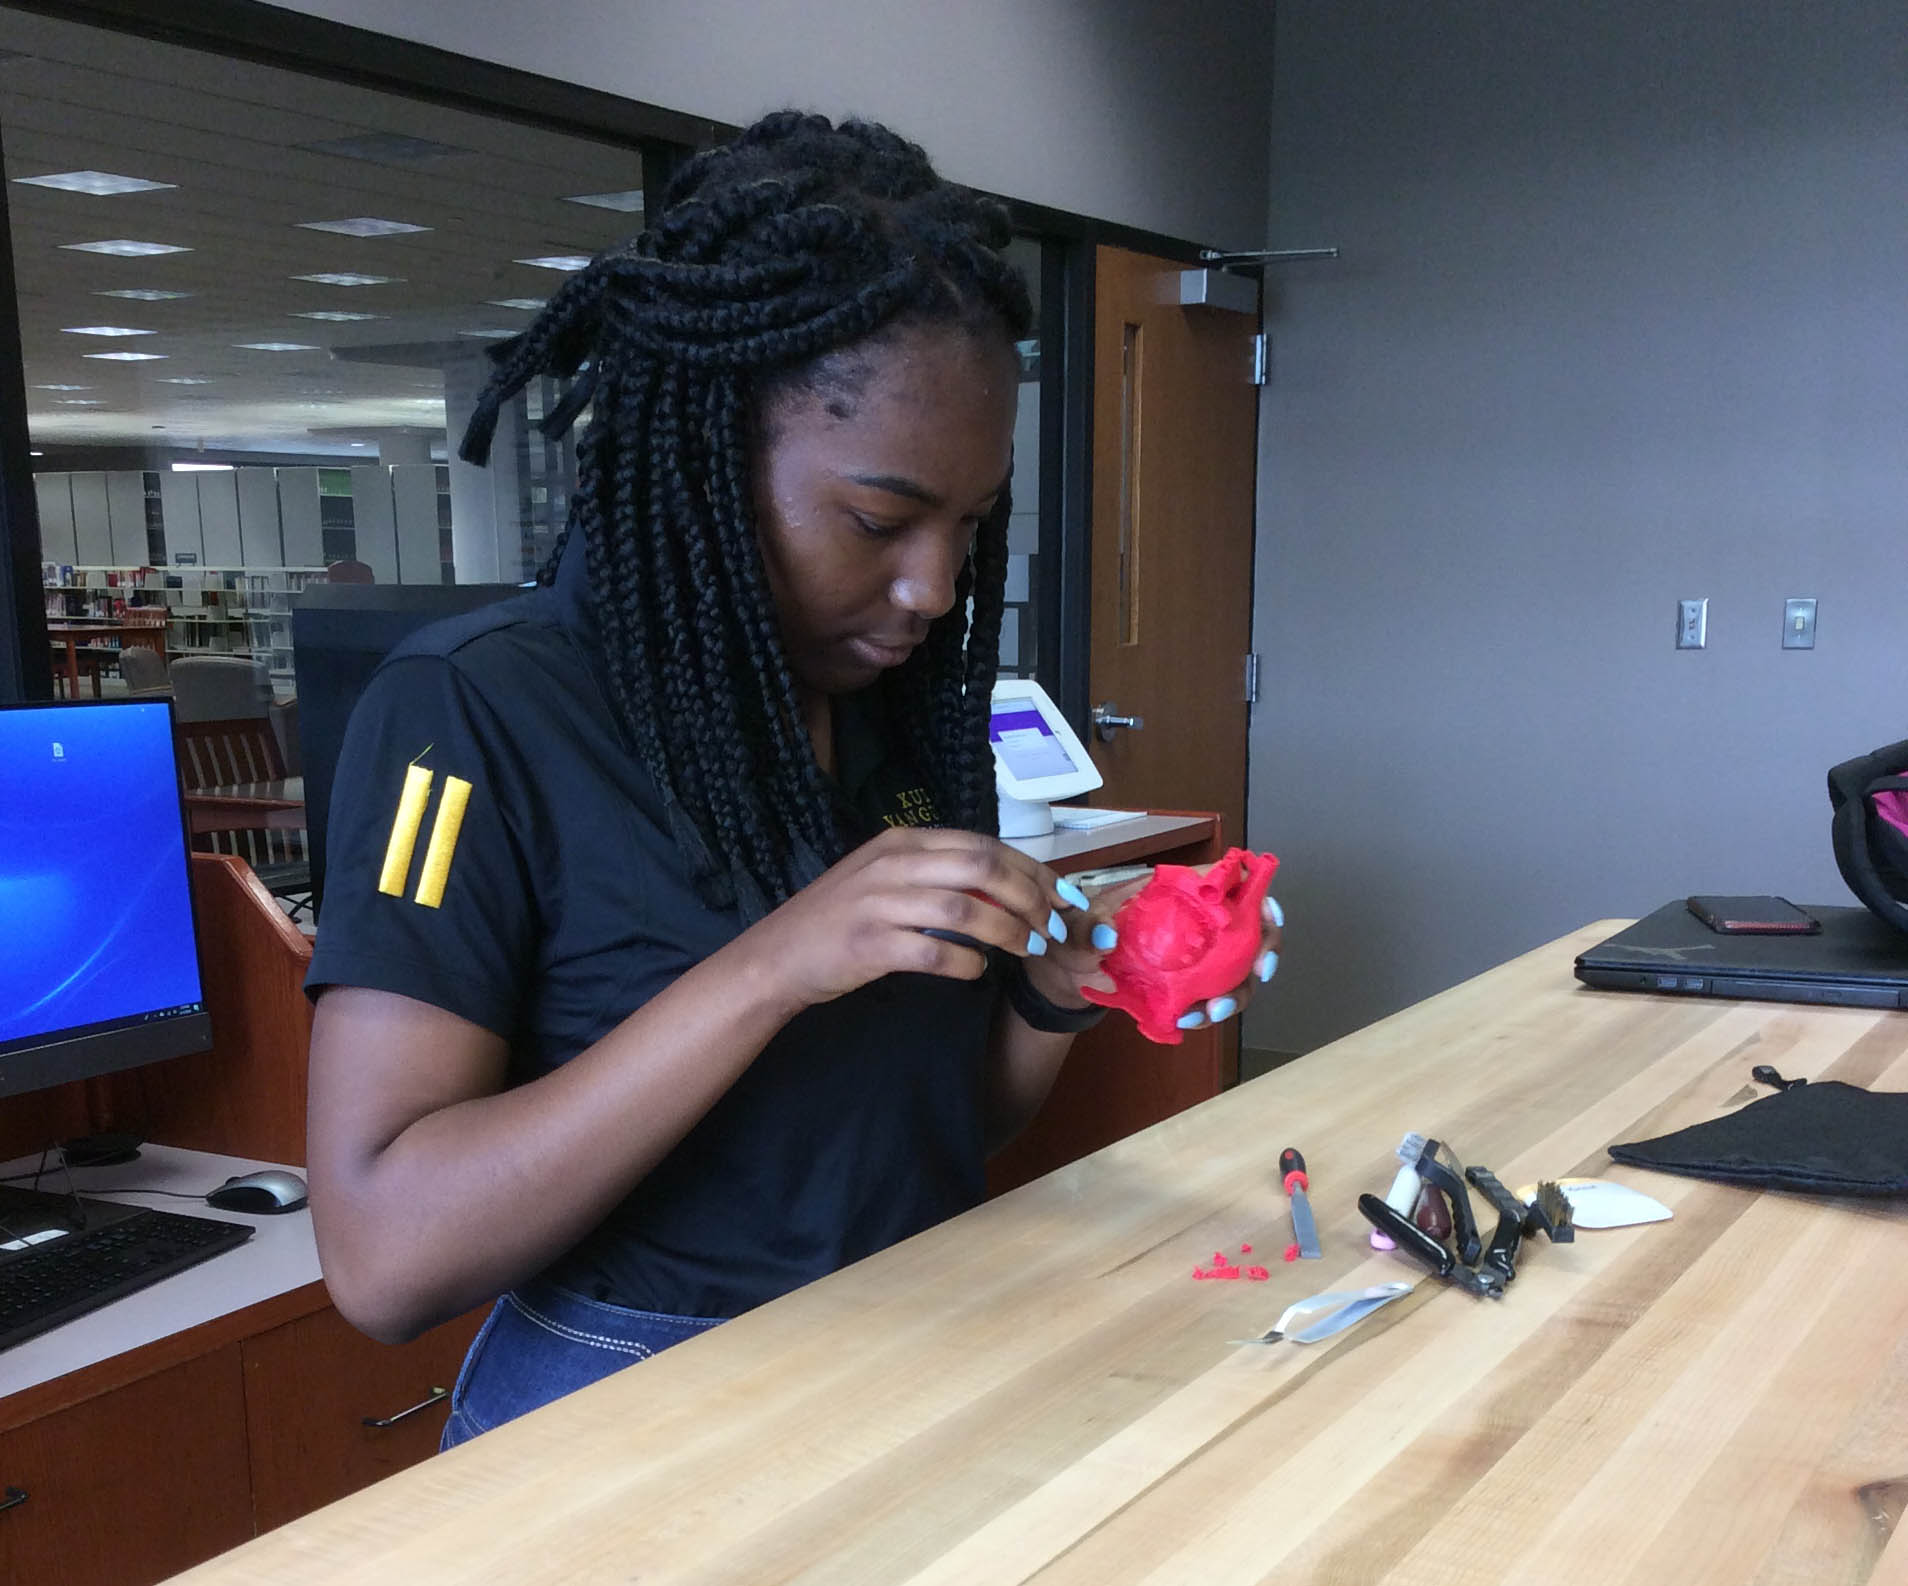 Student Working on 3D Printed Object